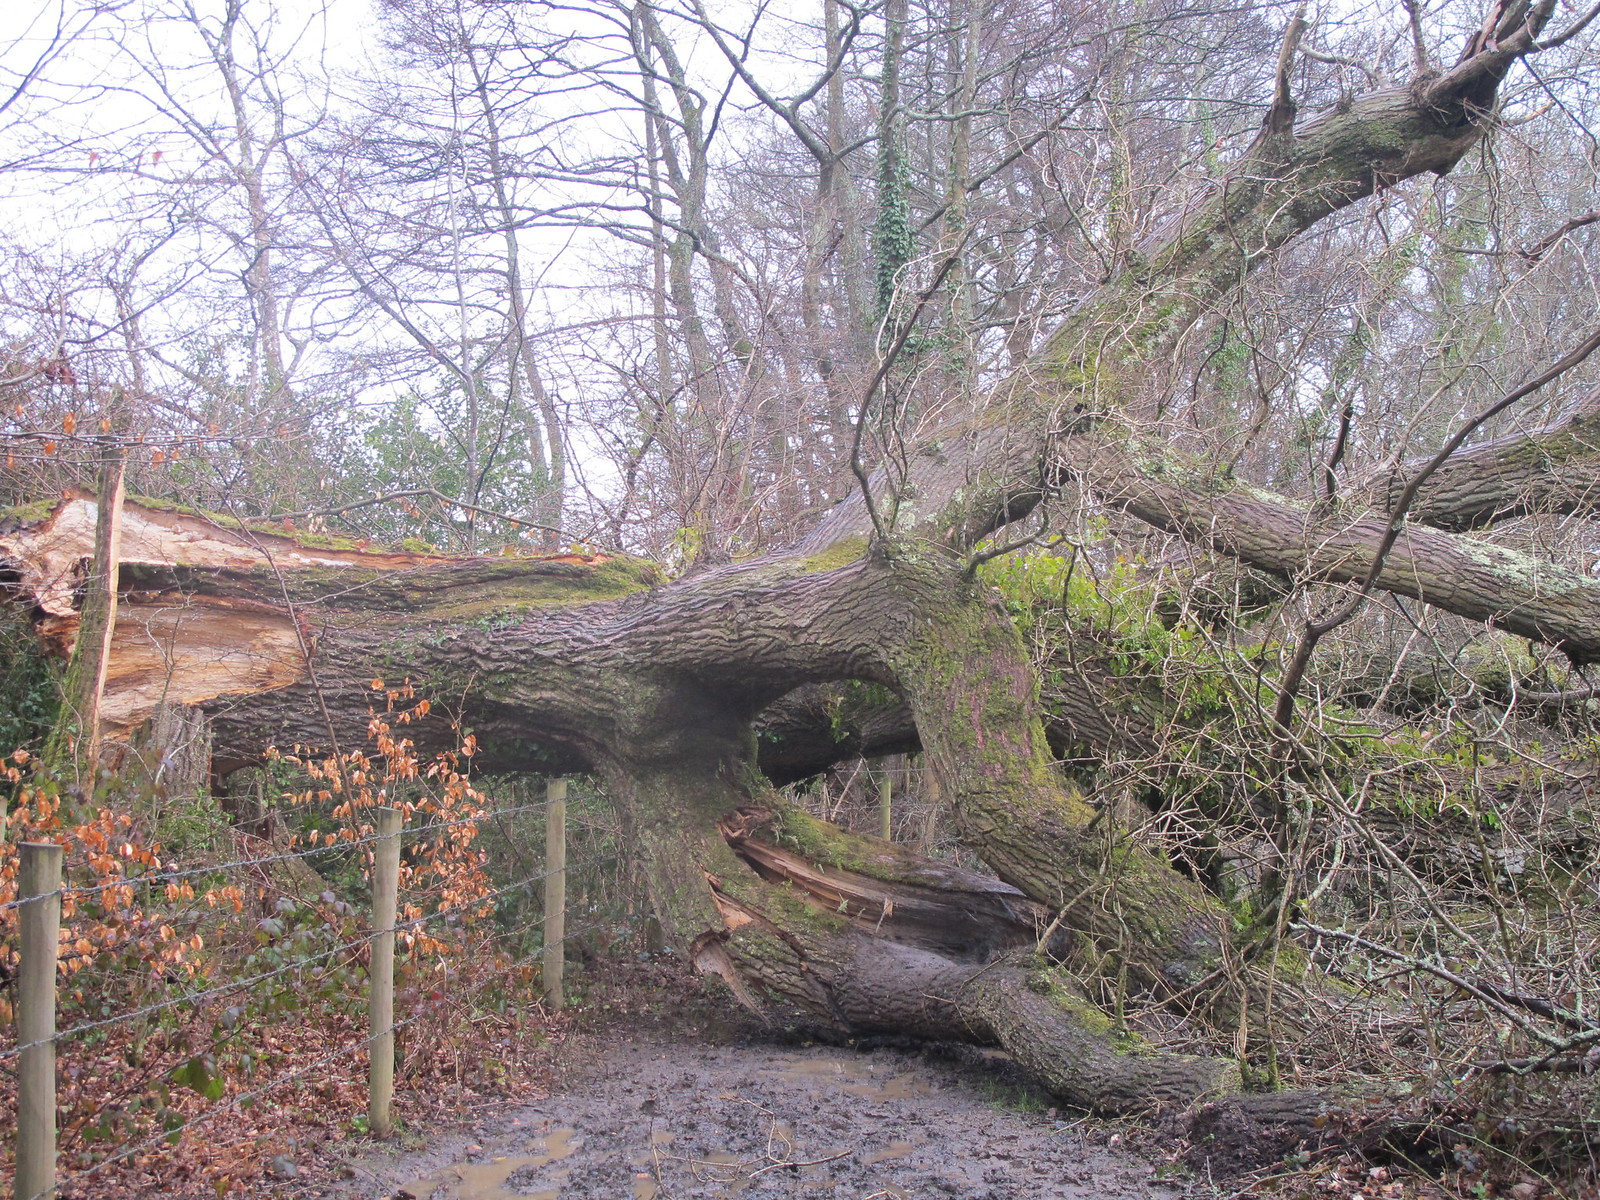 Fallen Oak Tree in Squabb Wood SWC Walk 58 Mottisfont and Dunbridge to Romsey taken by Karen C.